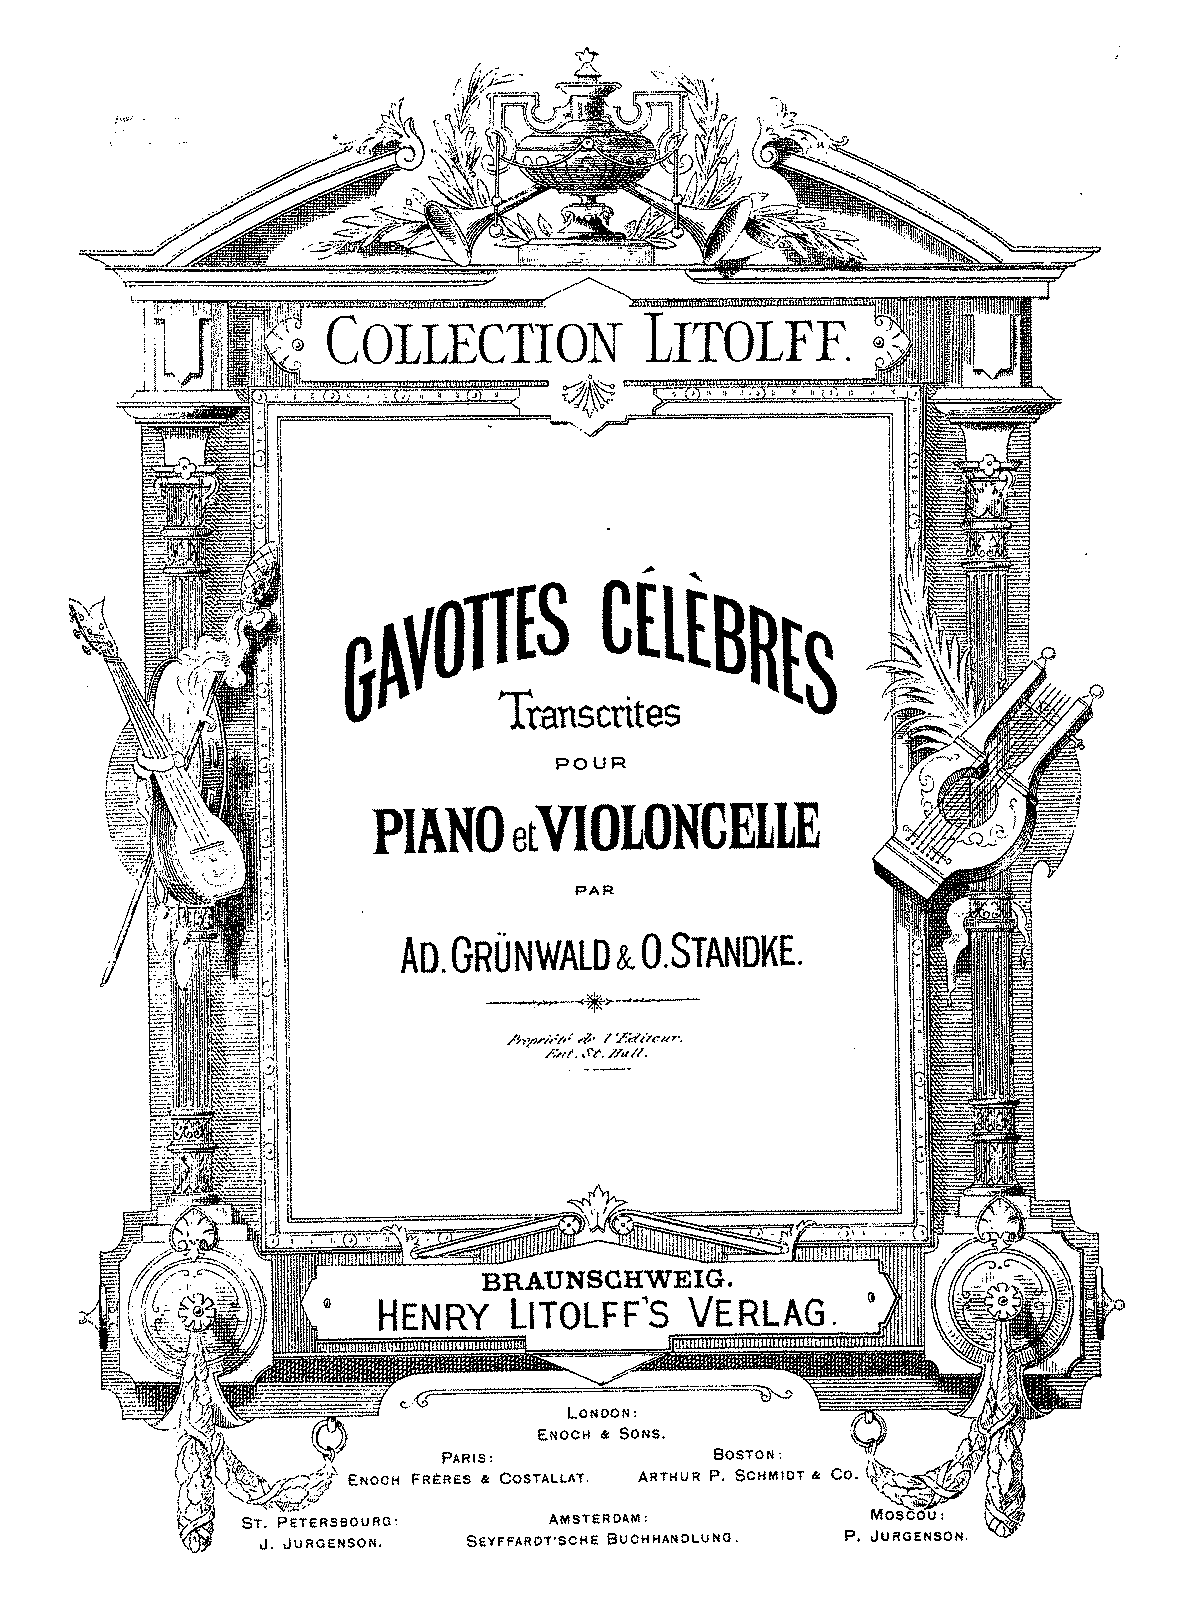 PMLP52386-Martini - Gavotte Les Moutons (Grunwald e Standke) for cello and piano.pdf